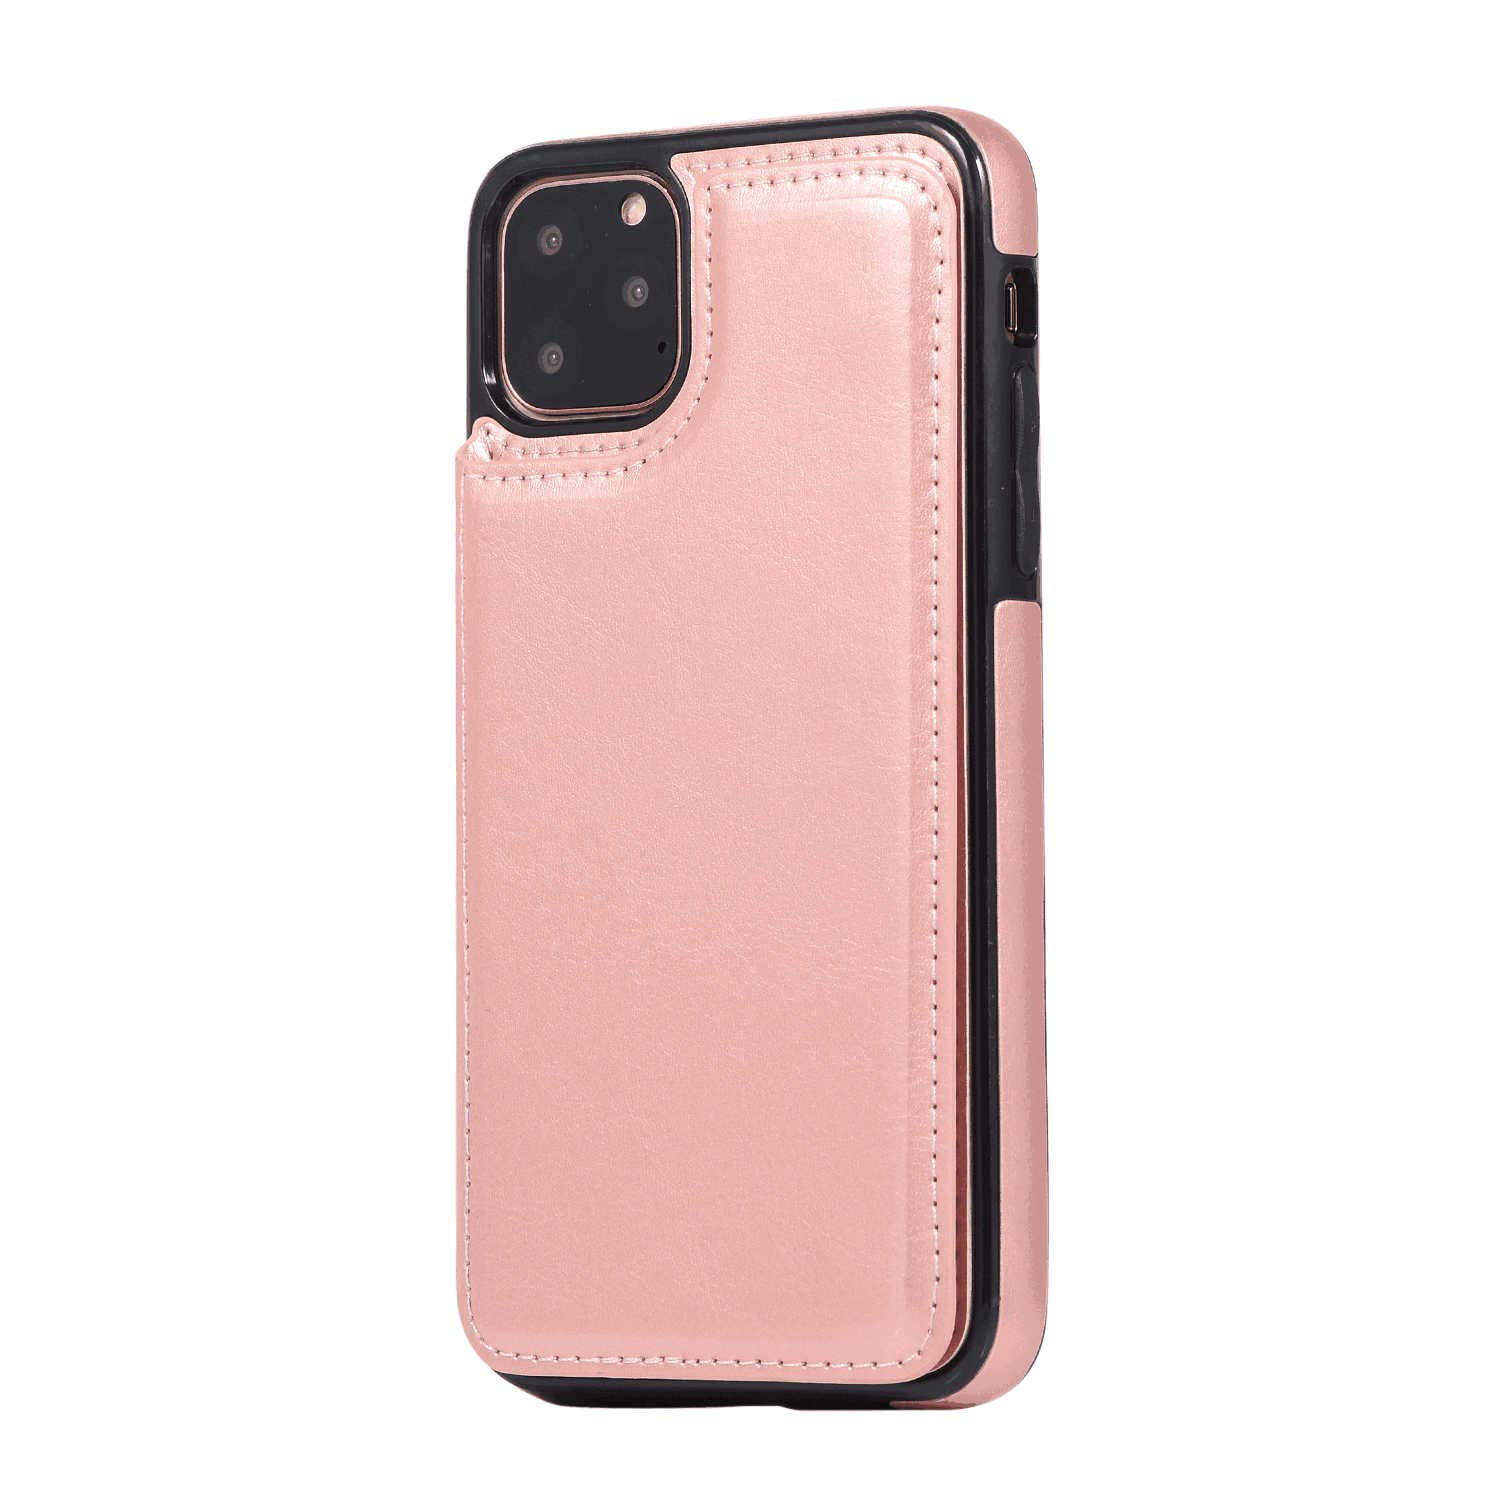 Cover for Leather Card Holders Mobile Phone case Kickstand Extra-Protective Business Flip Cover Samsung Galaxy S7 Flip Case